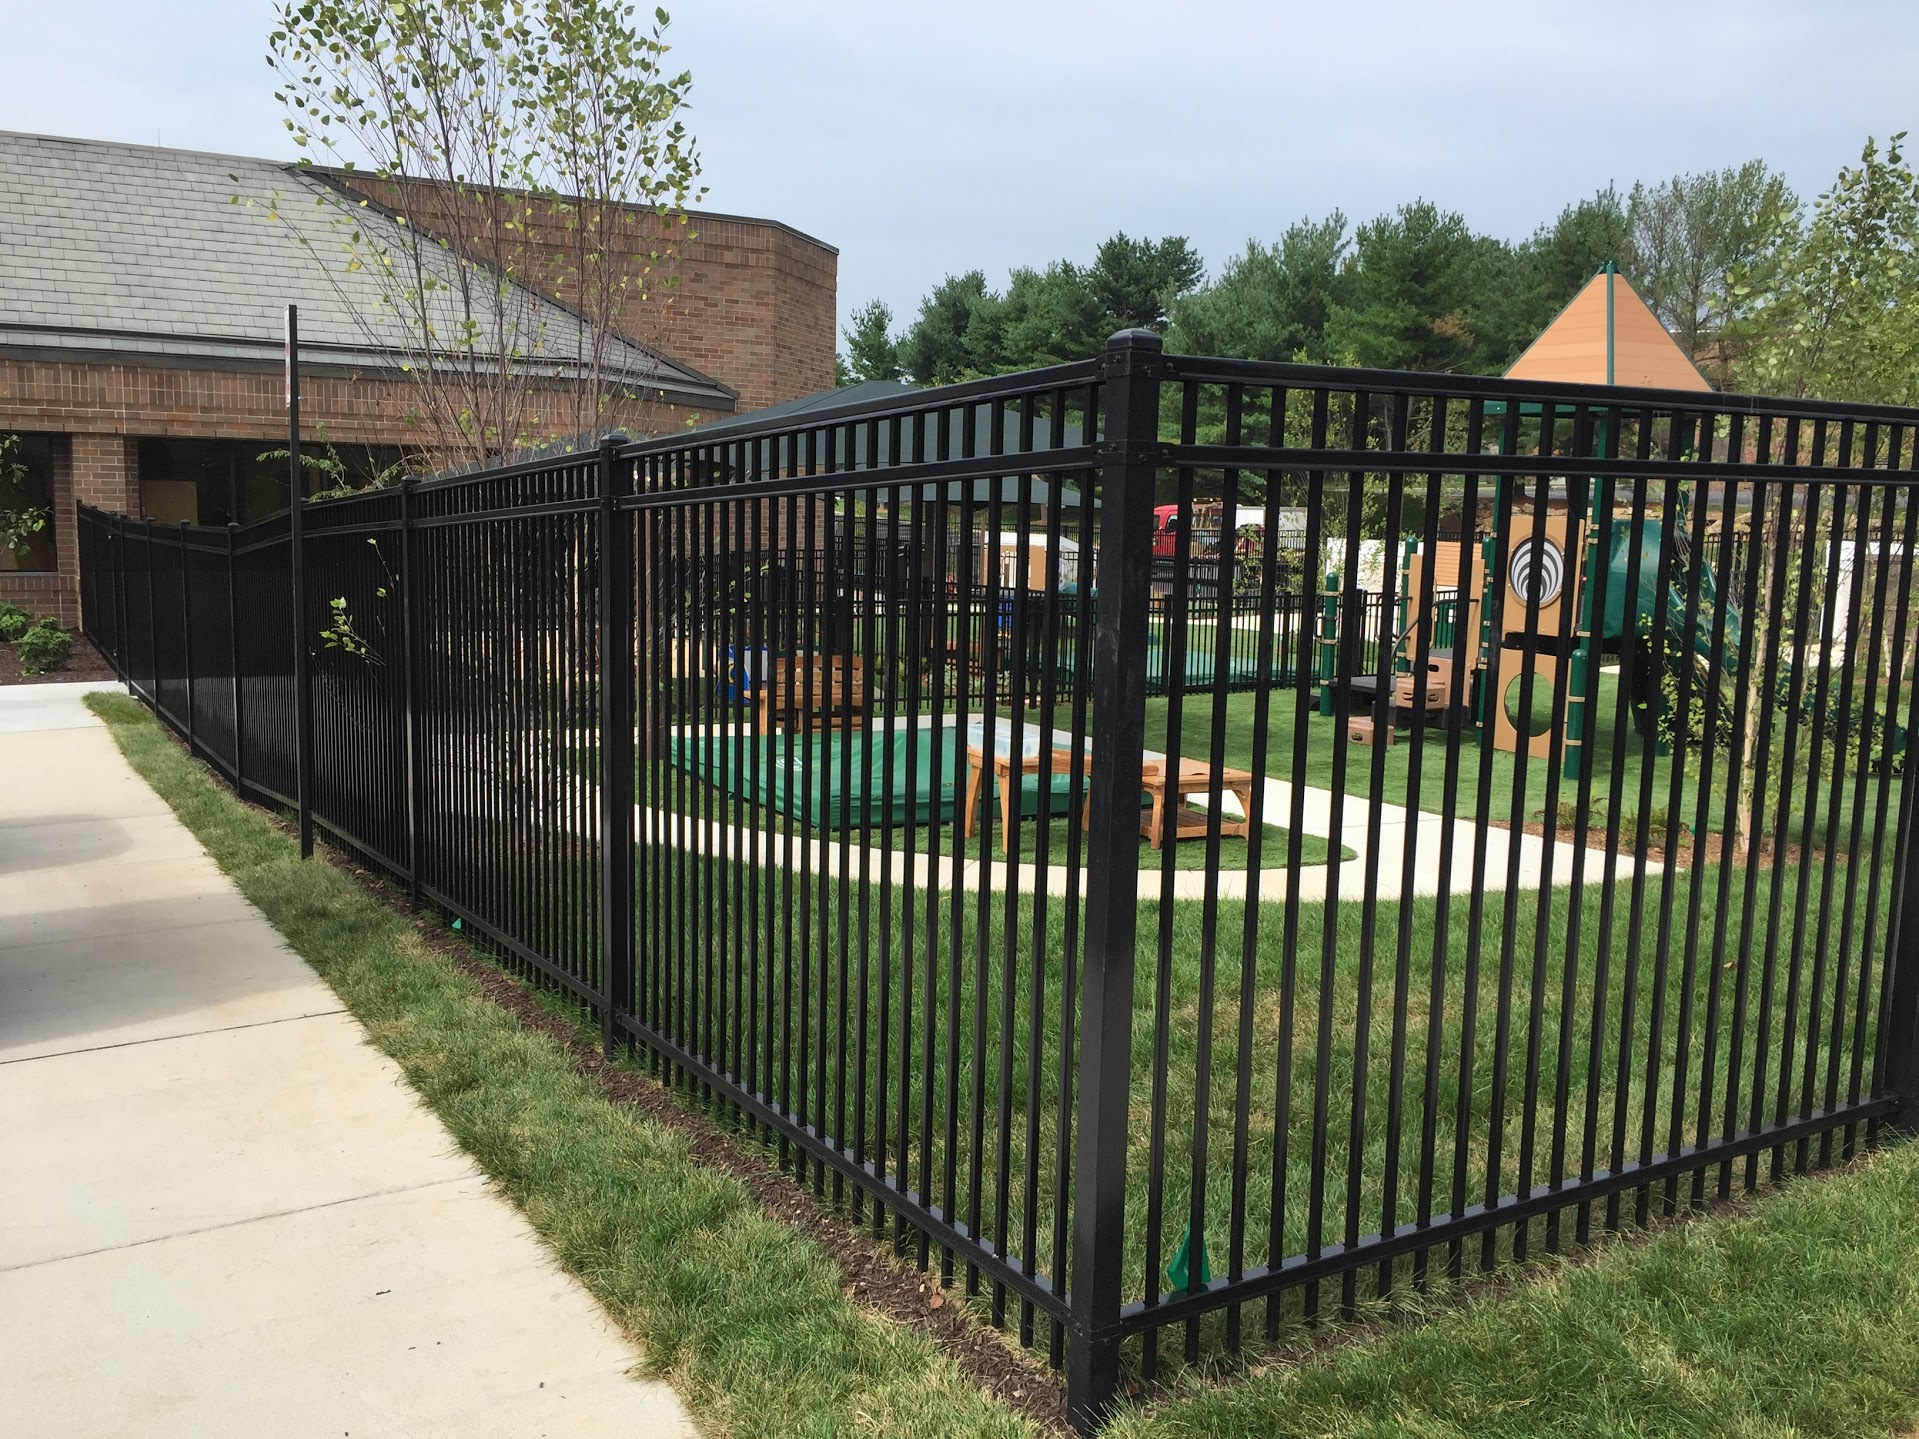 Fence Brokers Arkansas Gate And Fence Wholesale Supplies Wood Fencing Chain Link Ornamental Fencing Access Control Systems